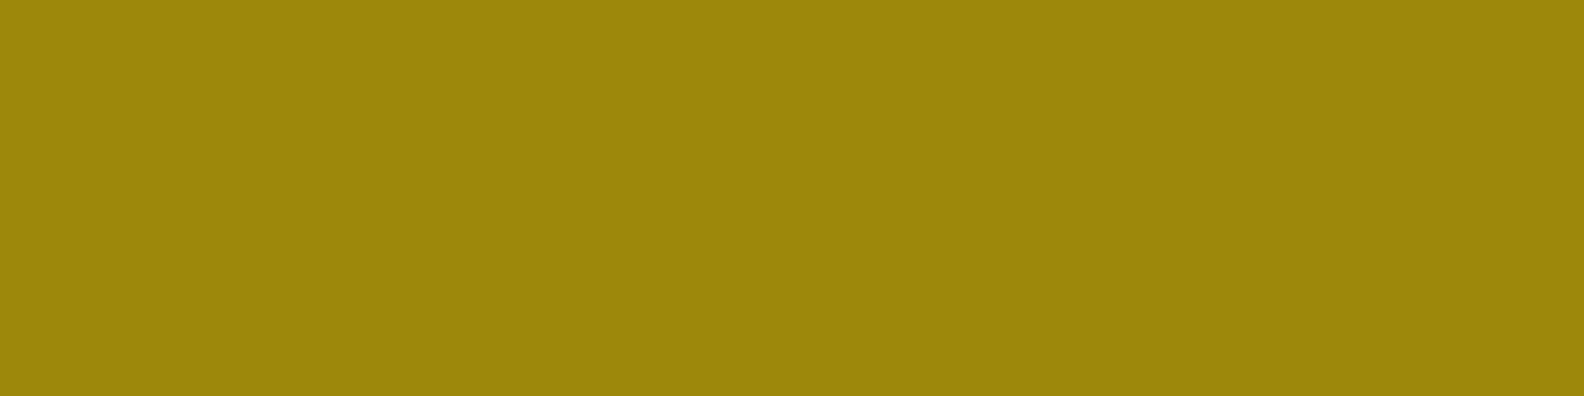 1584x396 Dark Yellow Solid Color Background